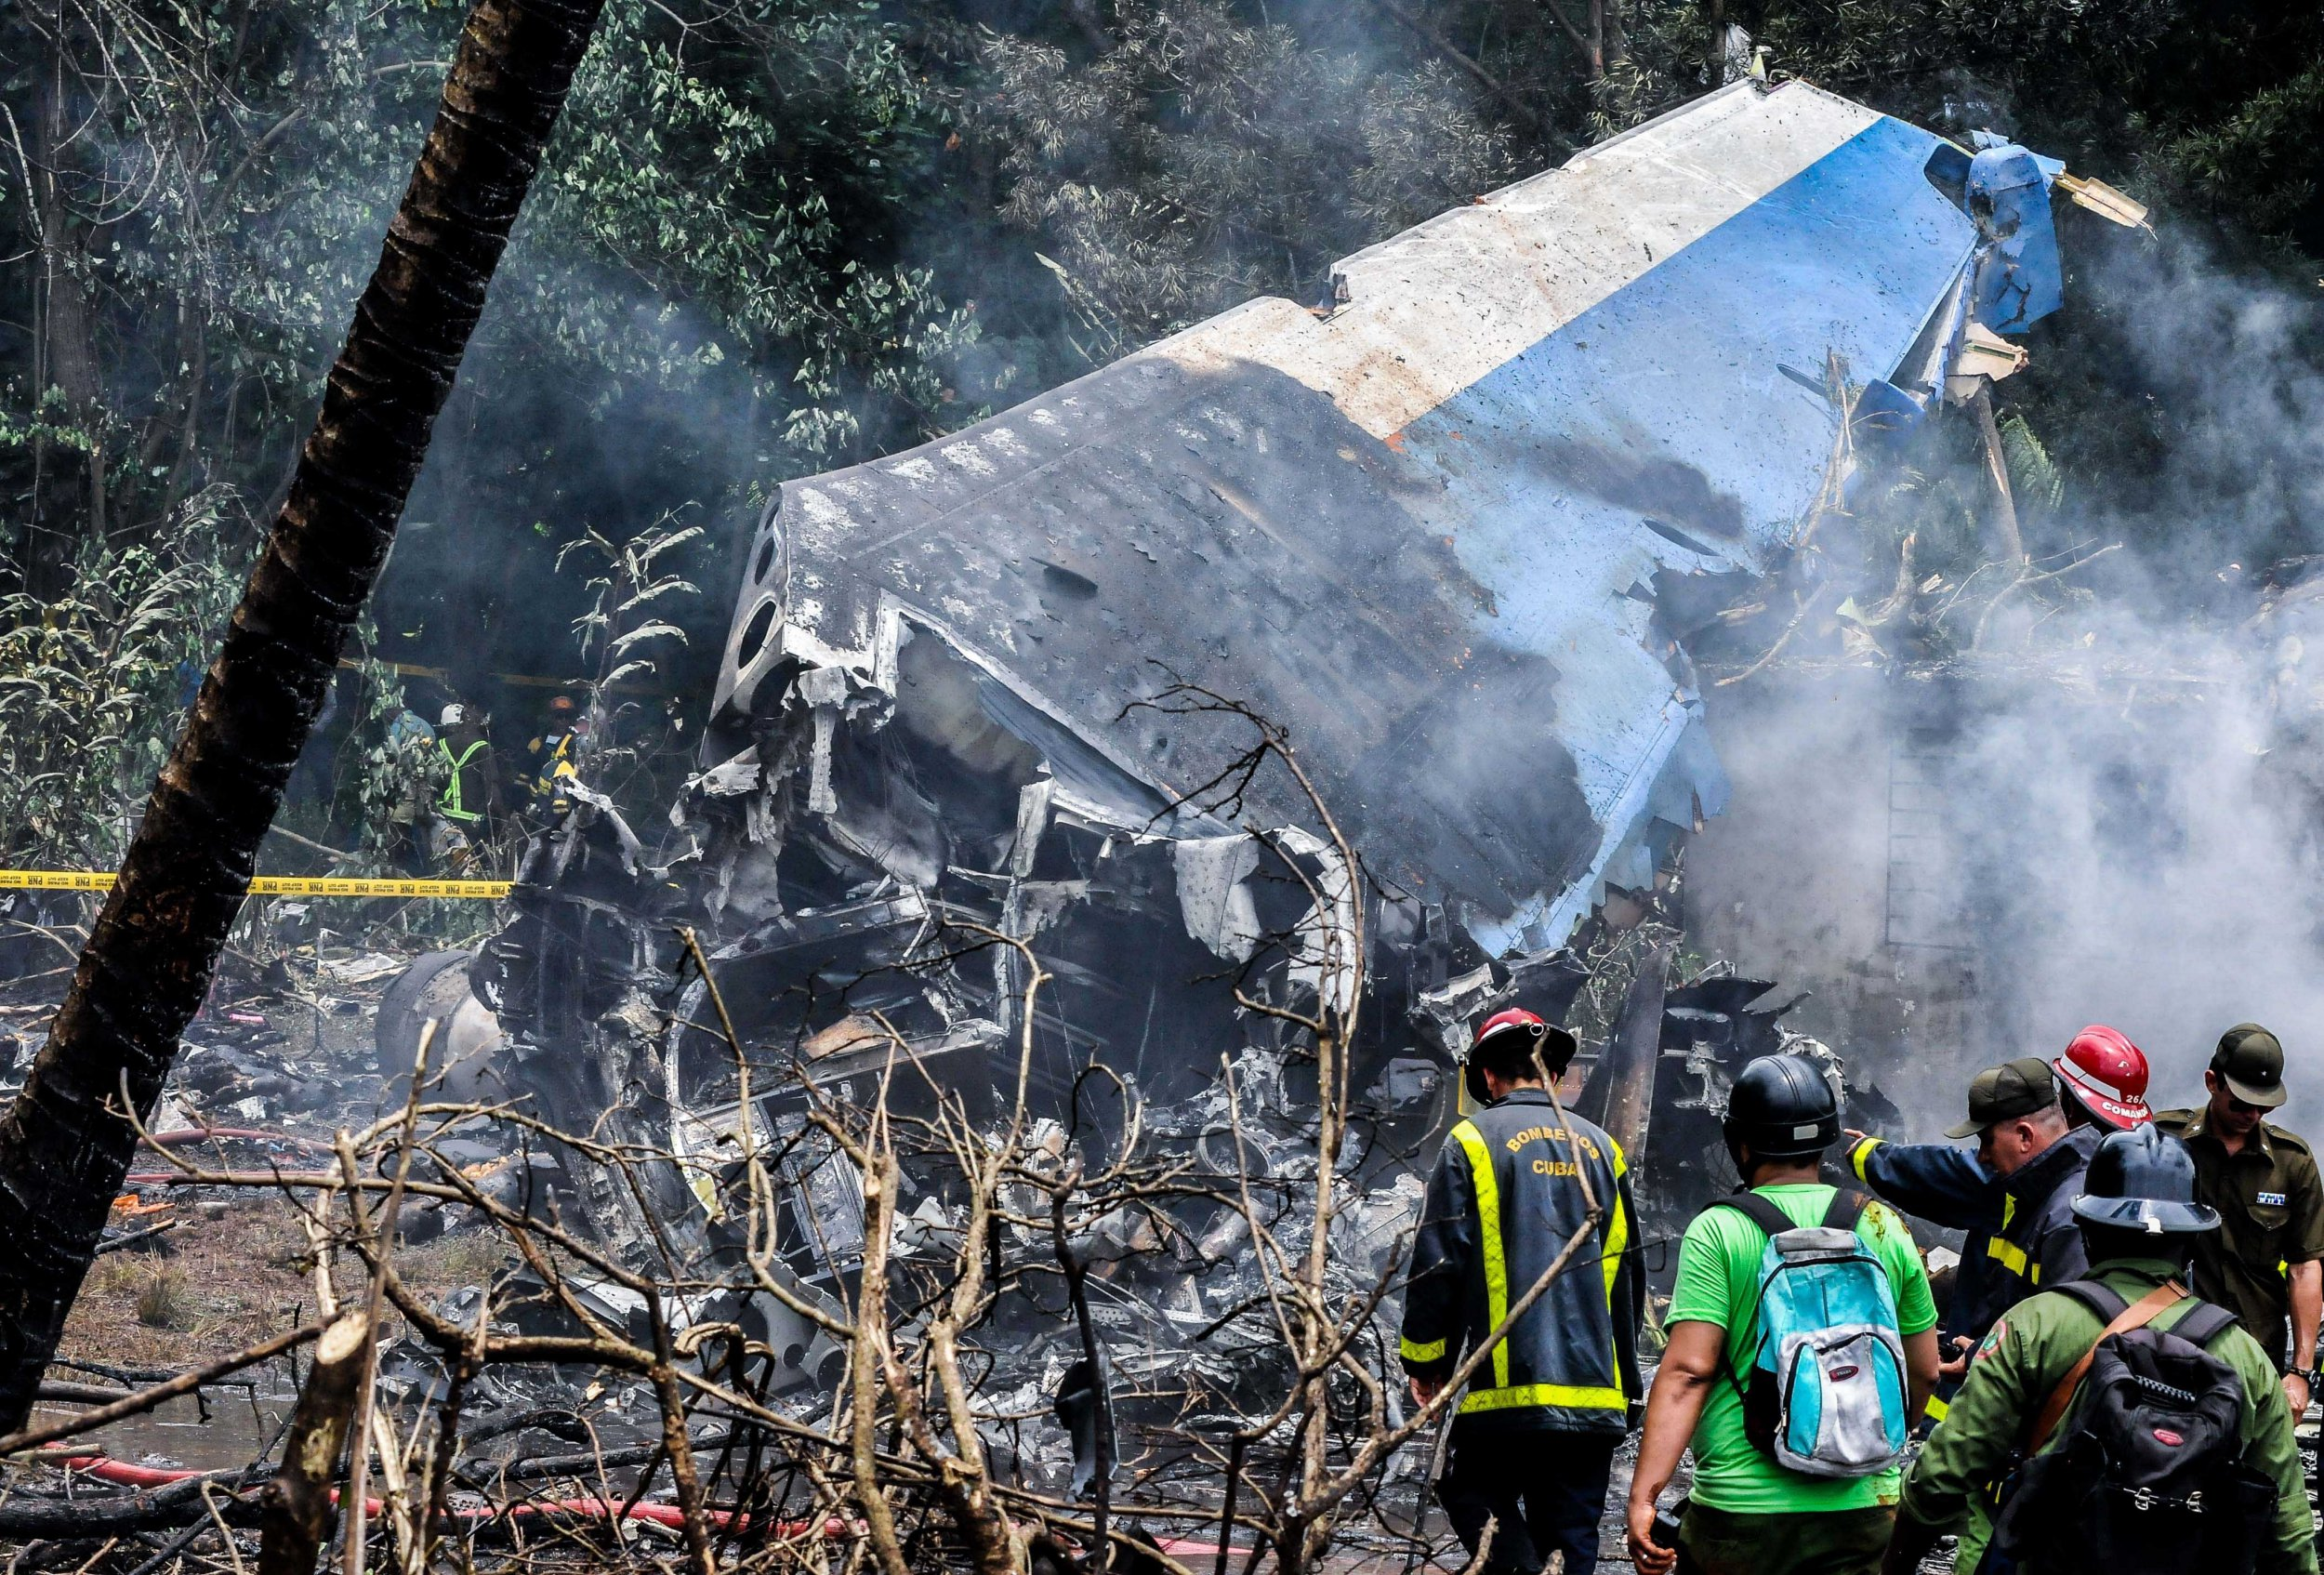 """(180519) -- HAVANA, May 19, 2018 (Xinhua) -- Rescuers work at the site where an airplane of Cuban airline """"Cubana de Aviacion"""" crashed, in Havana, Cuba, on May 18, 2018. At least three people have been found alive, but in critical condition, after a Boeing 737 passenger plane crashed near Havana on Friday, according to state newspaper Granma. (Xinhua/Joaquin Hernandez) (cr) (da)(axy)"""